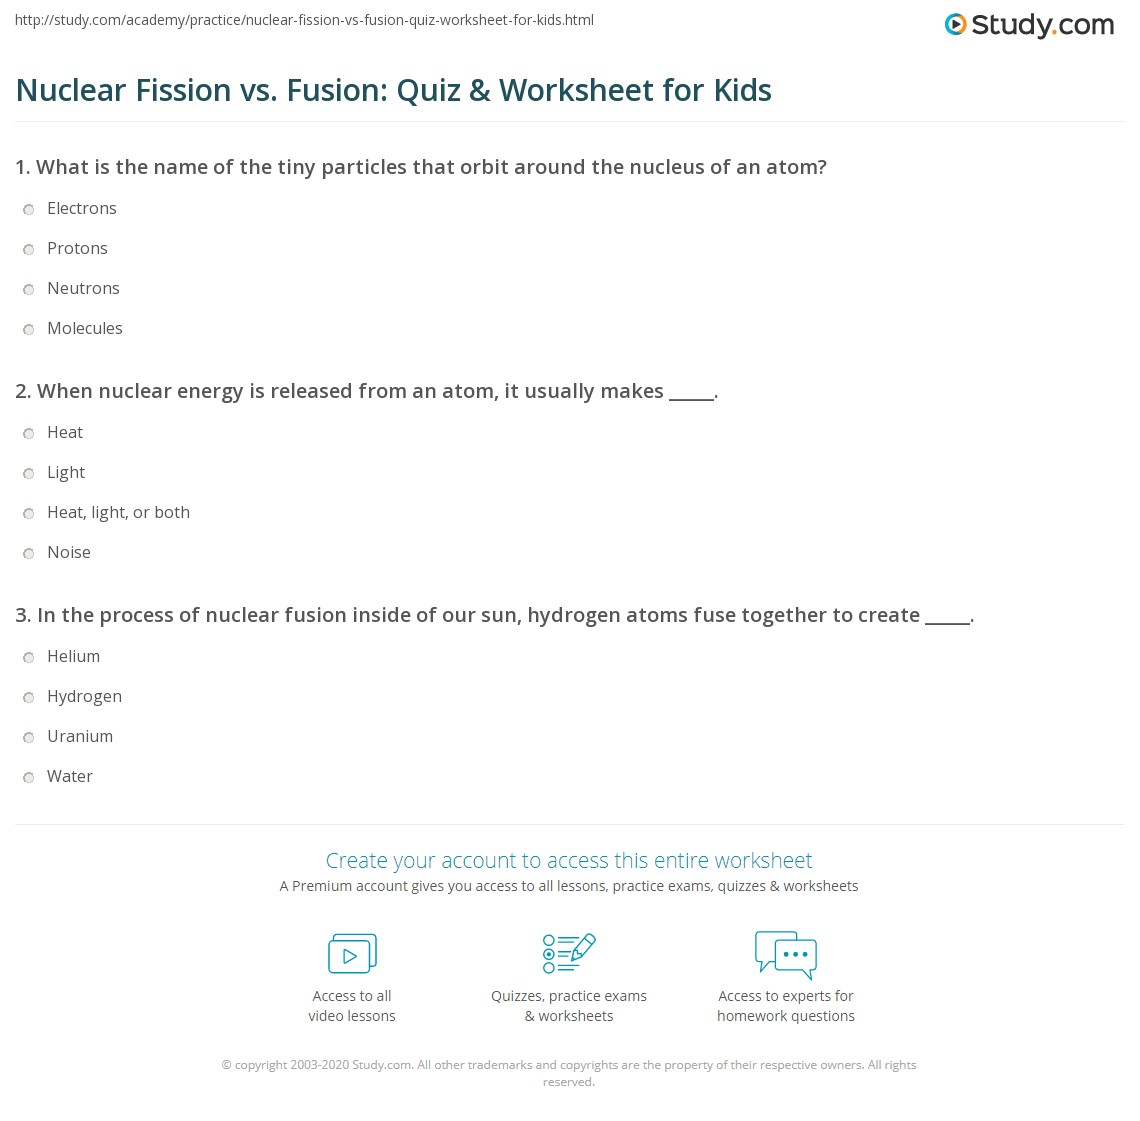 Fission Versus Fusion Worksheet Answers